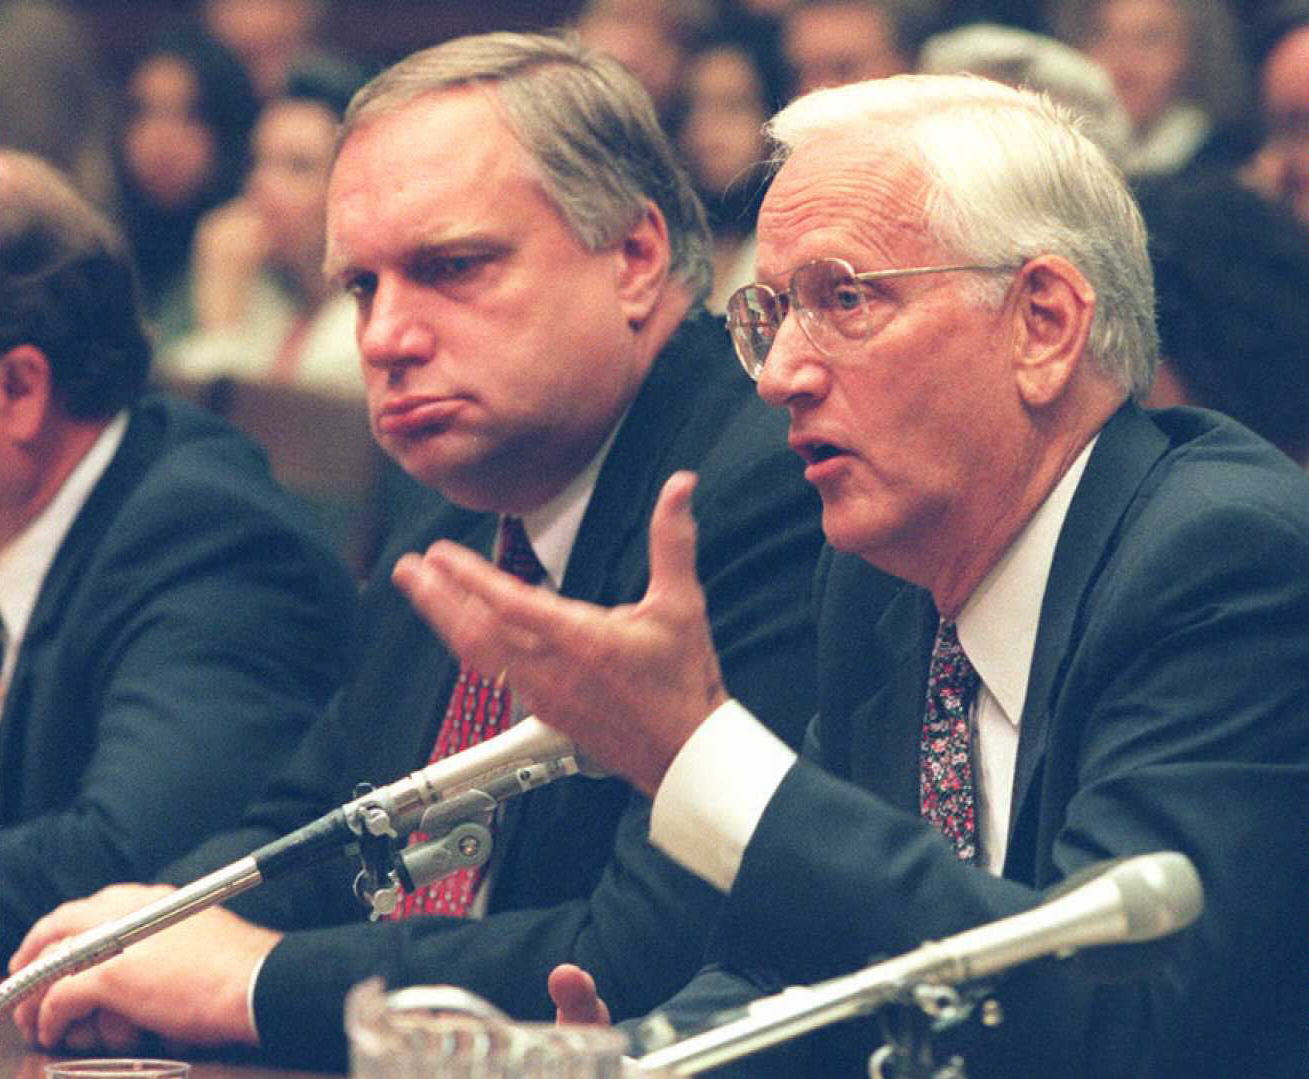 Former FBI Director William Sessions(R) testifies about the 1993 raid on the Branch Davidian compound in Waco, Texas as former Associate Attorney General Webster Hubbell(L) looks on during congressional hearings on Capitol Hill in Washington, DC 28 July.